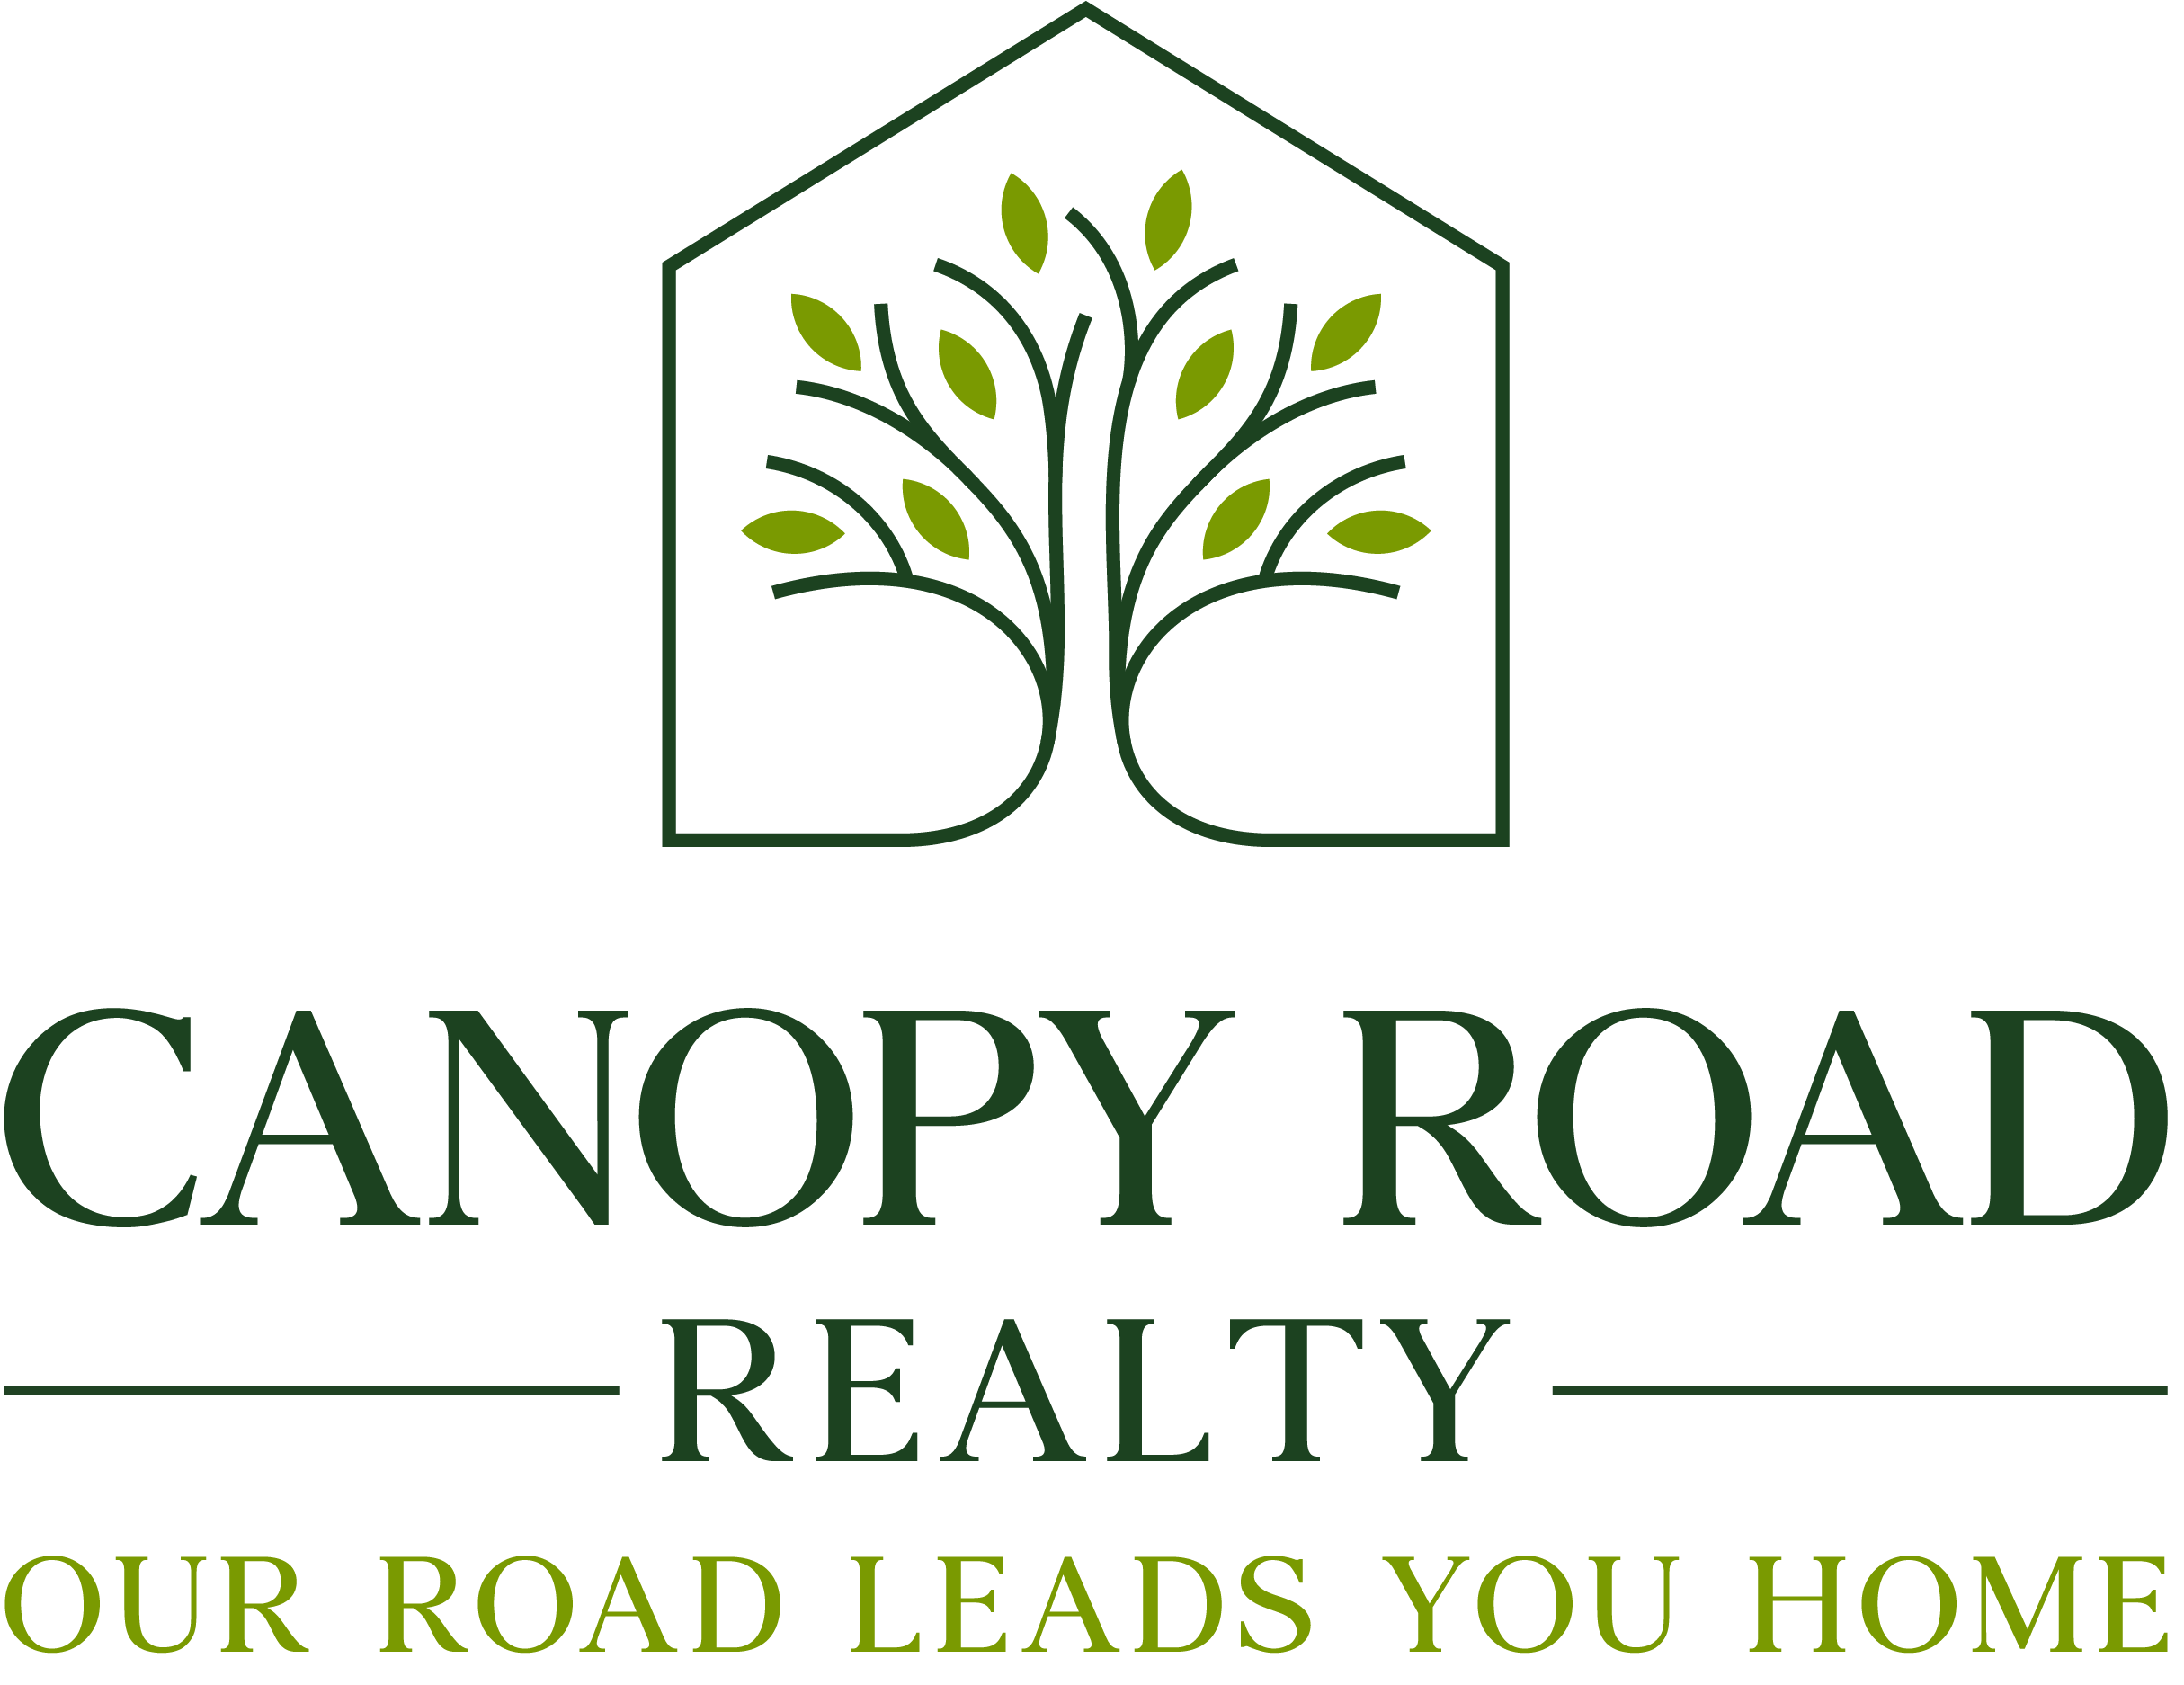 Looking for elegant, simple logo design and branding for boutique real estate firm